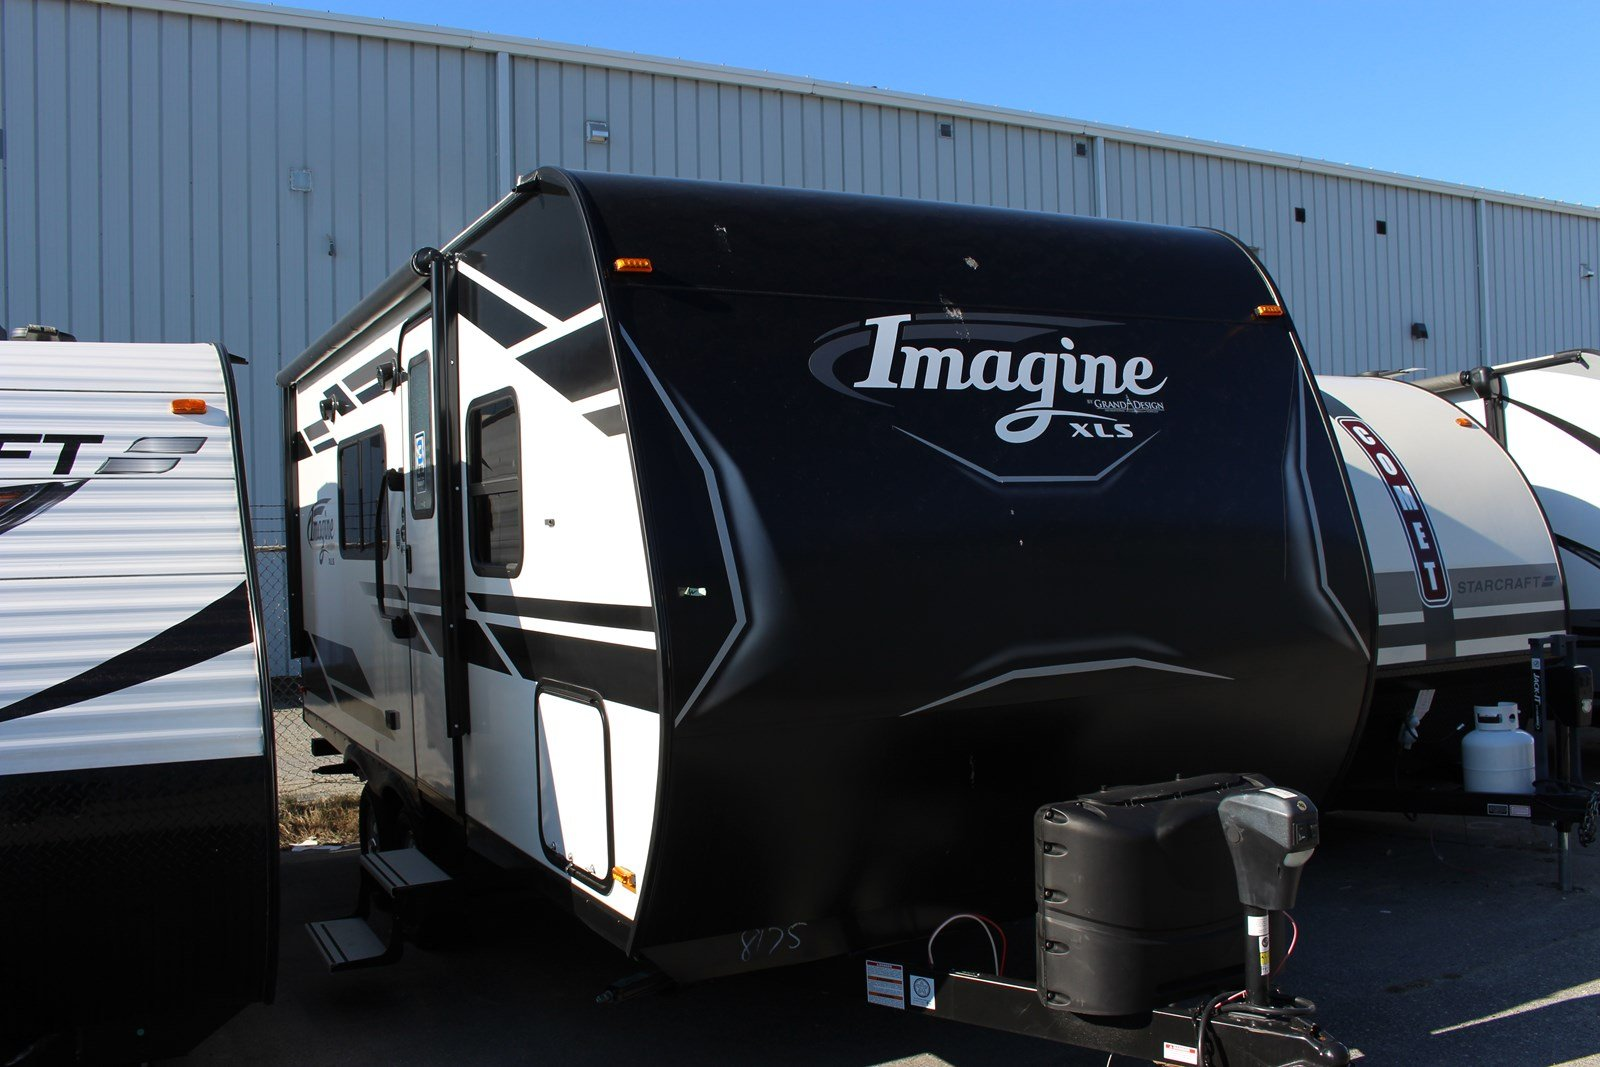 New 2019 GRAND DESIGN IMAGINE XLS 18RBE